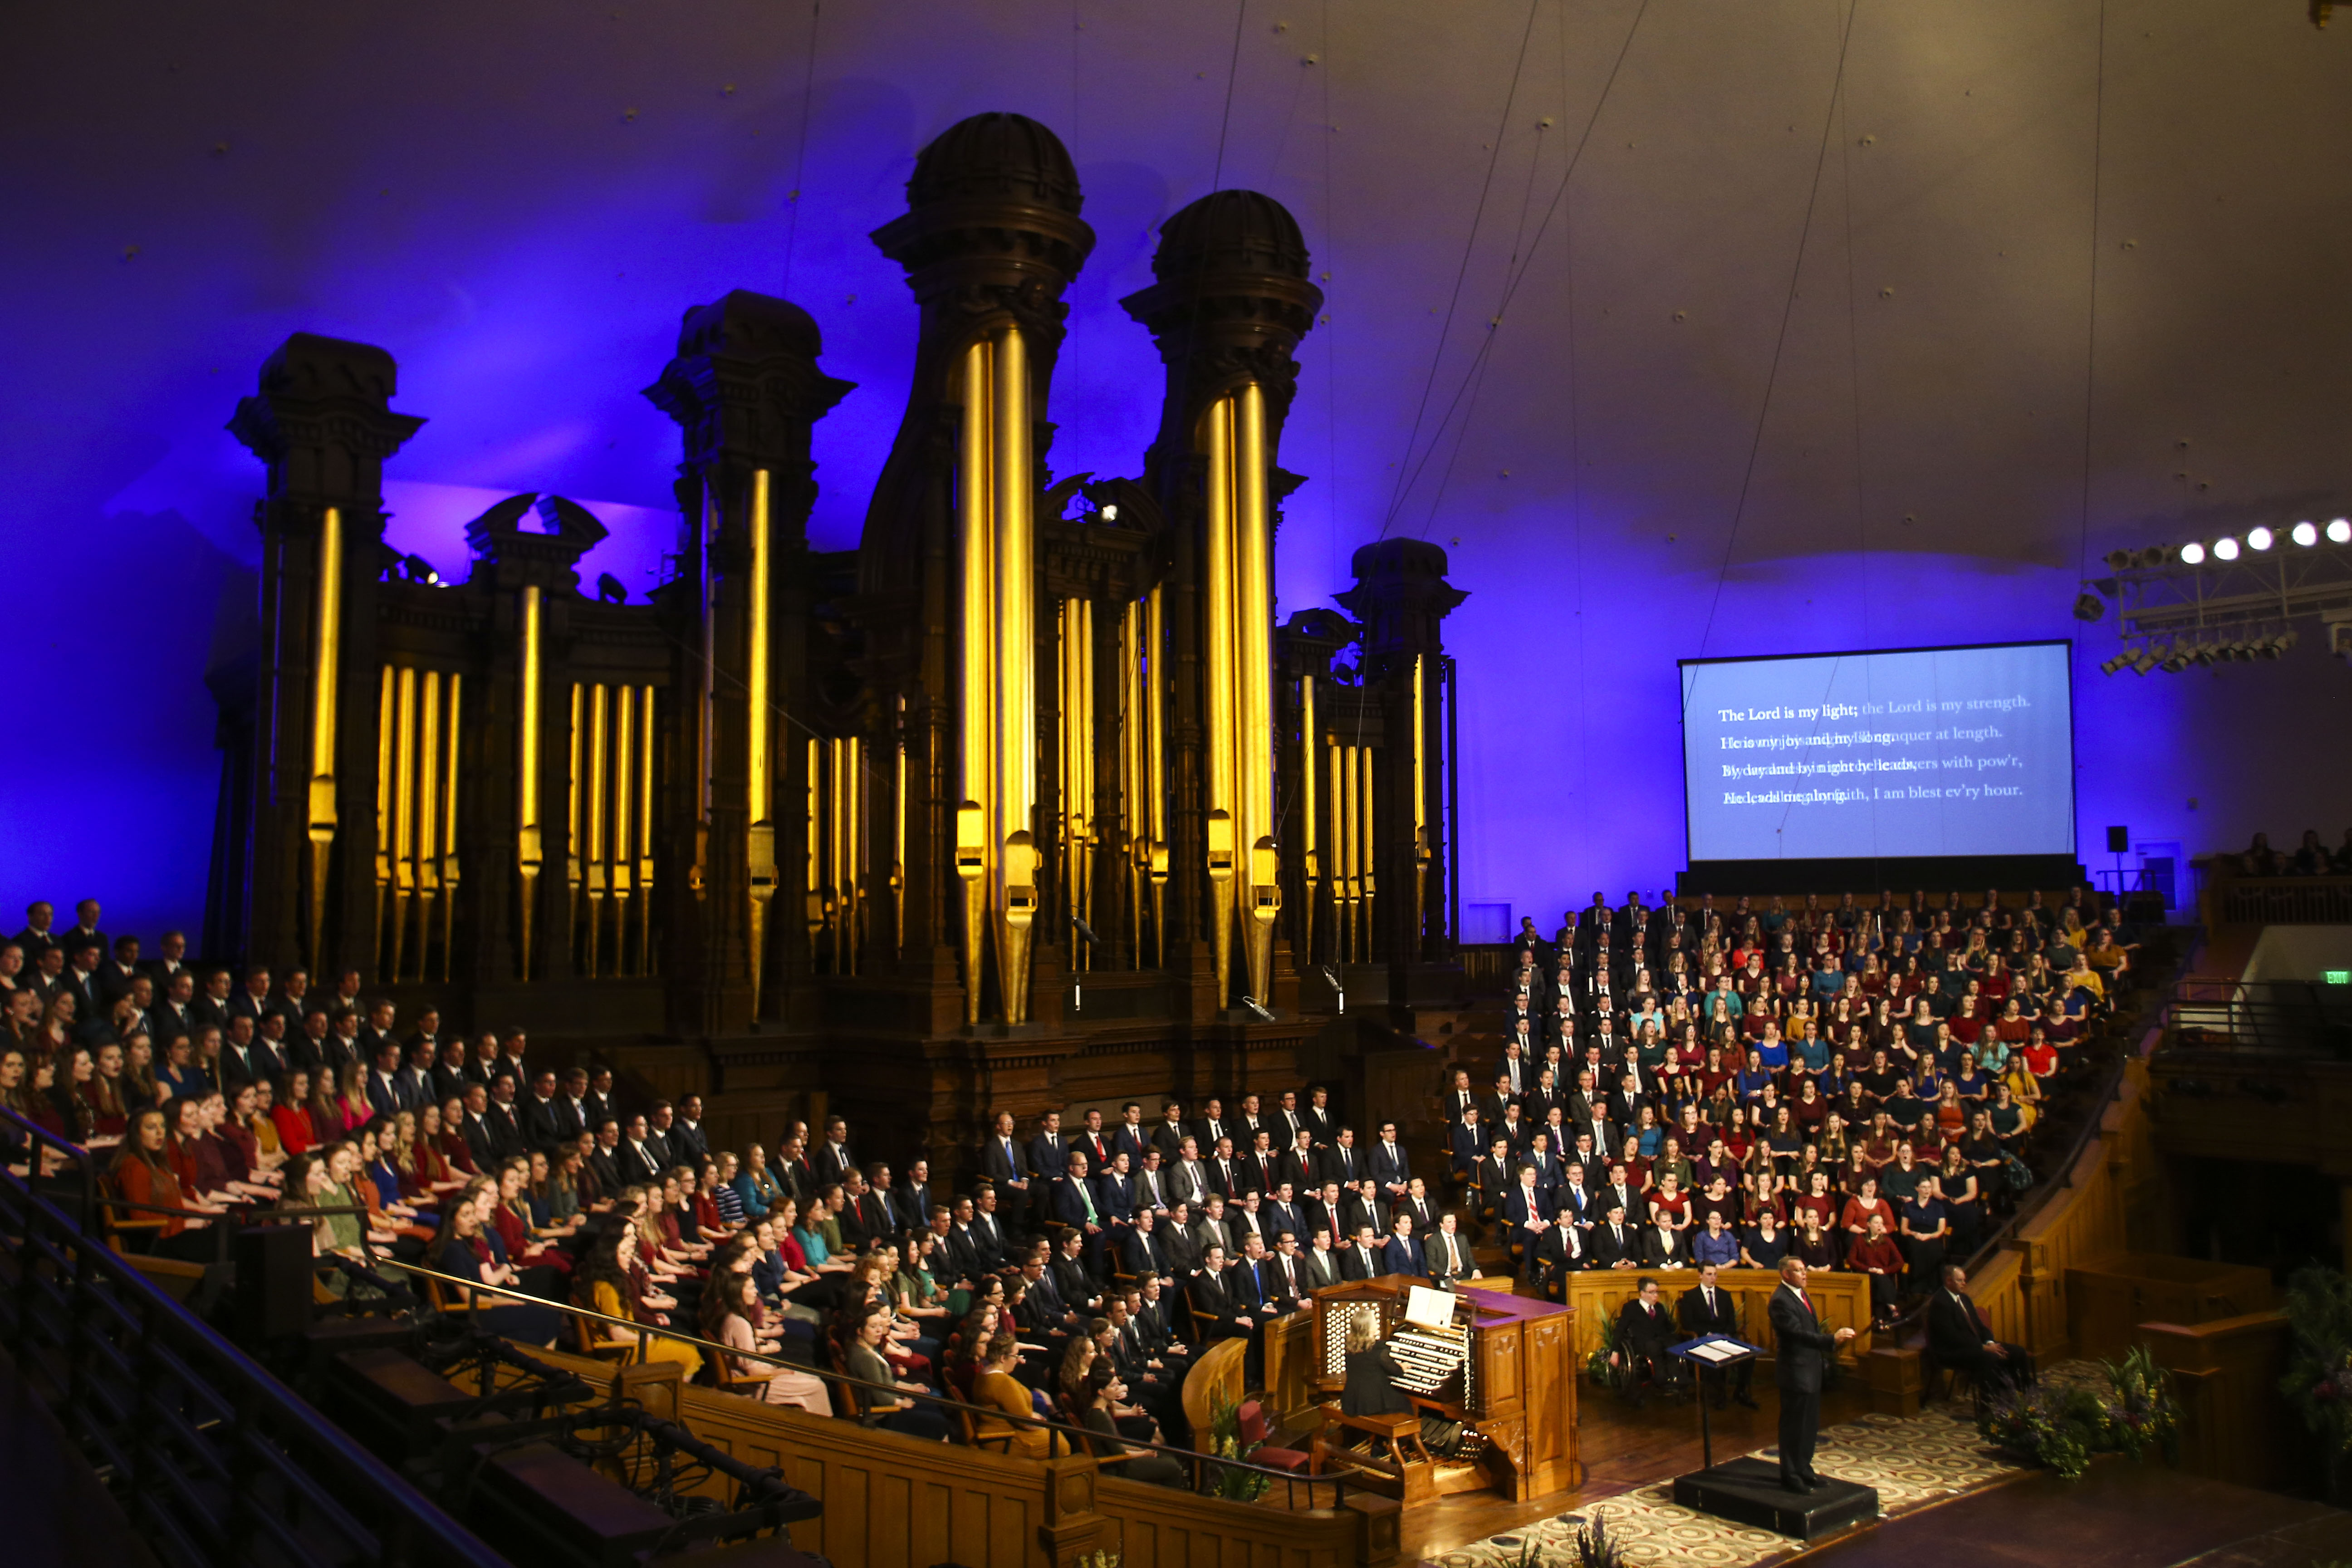 The congregation sings with the choir during the Worldwide Devotional for Young Adults at the Salt Lake Tabernacle in Salt Lake City on Sunday, May 5, 2019.